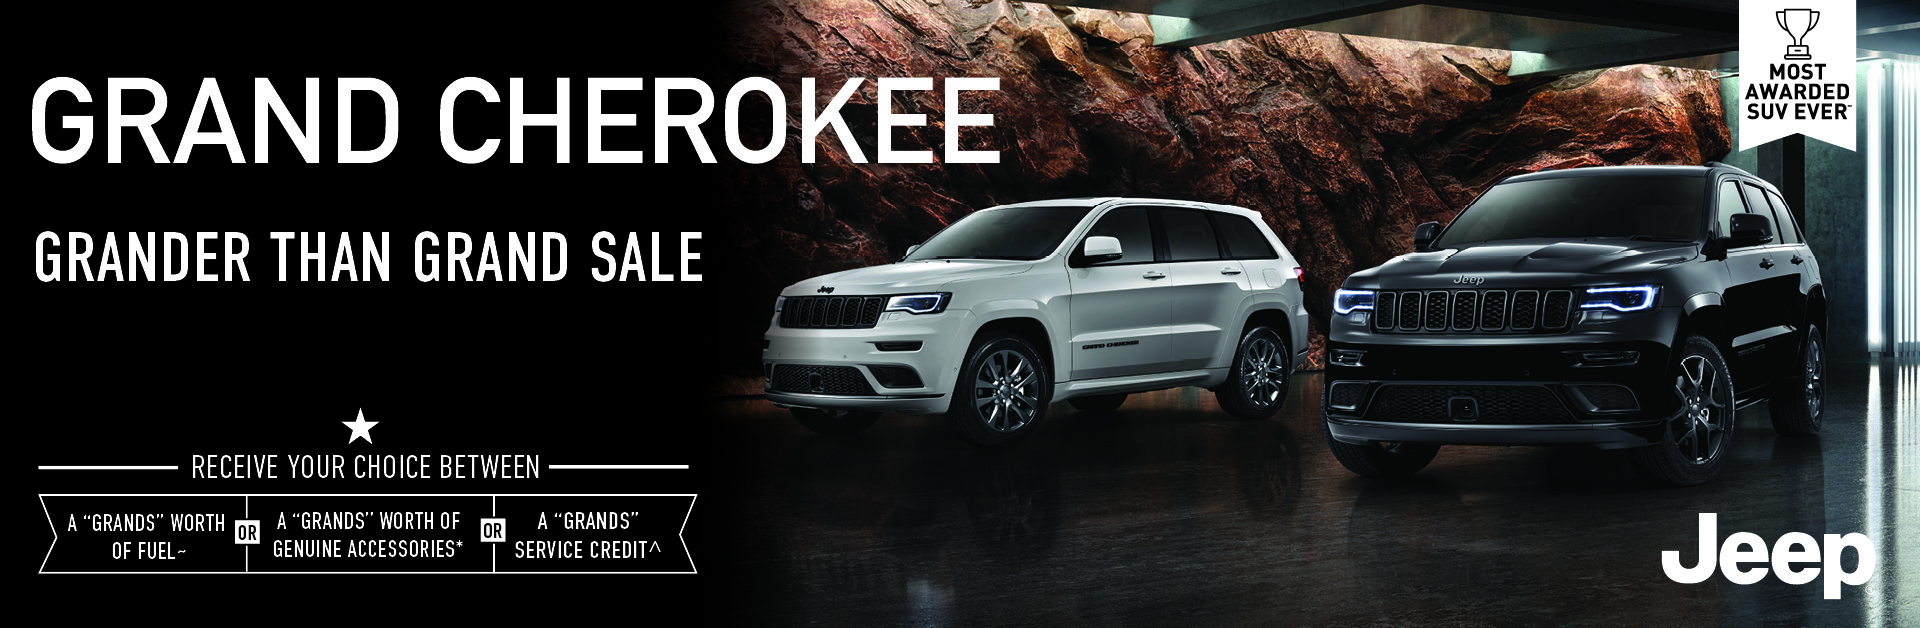 Grand Cherokee - Grander than Grand Sale